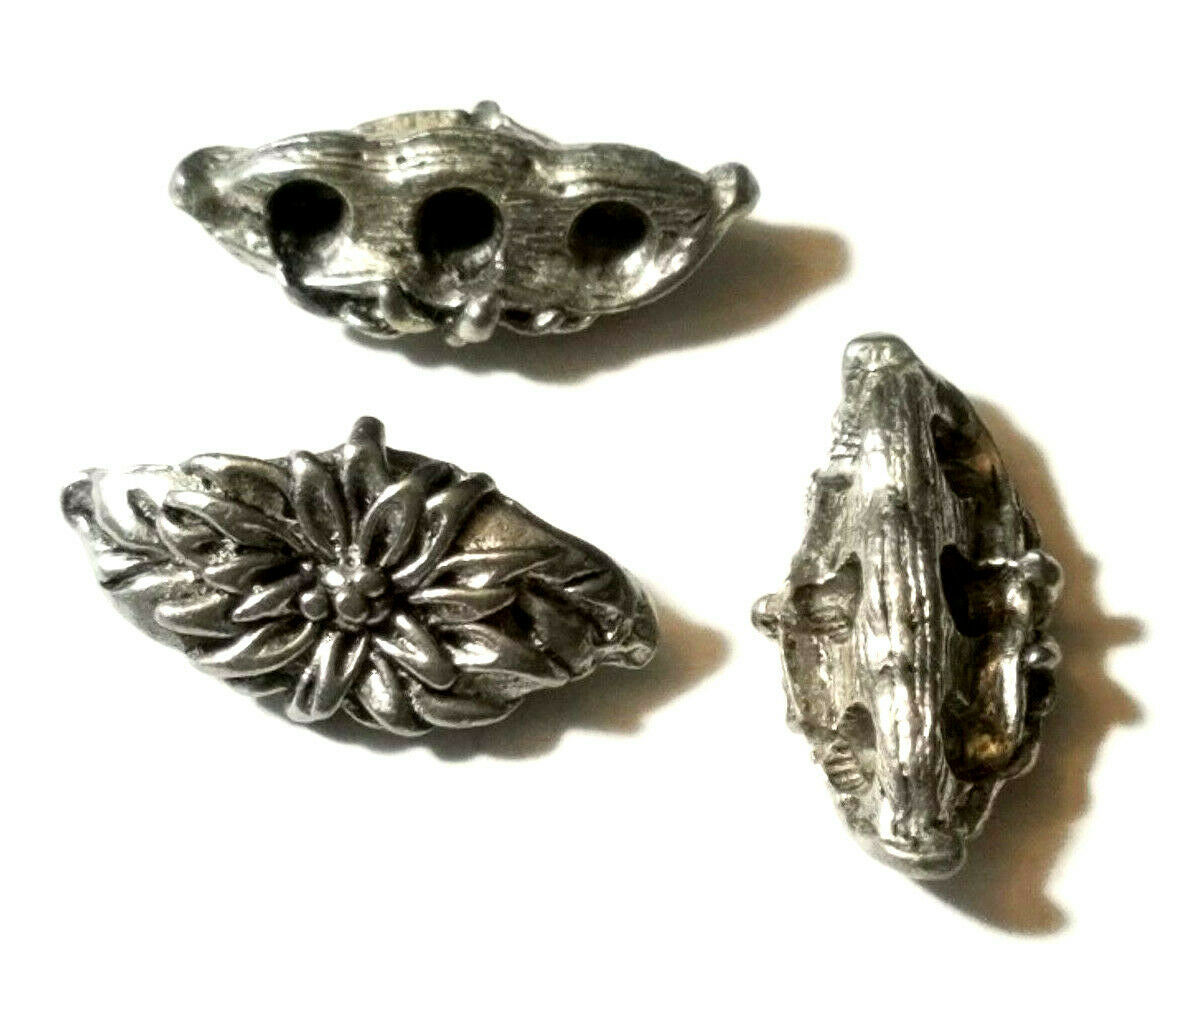 FLOWER AND LEAVES WIDE TOP 3 HOLE FINE PEWTER SPACER BAR